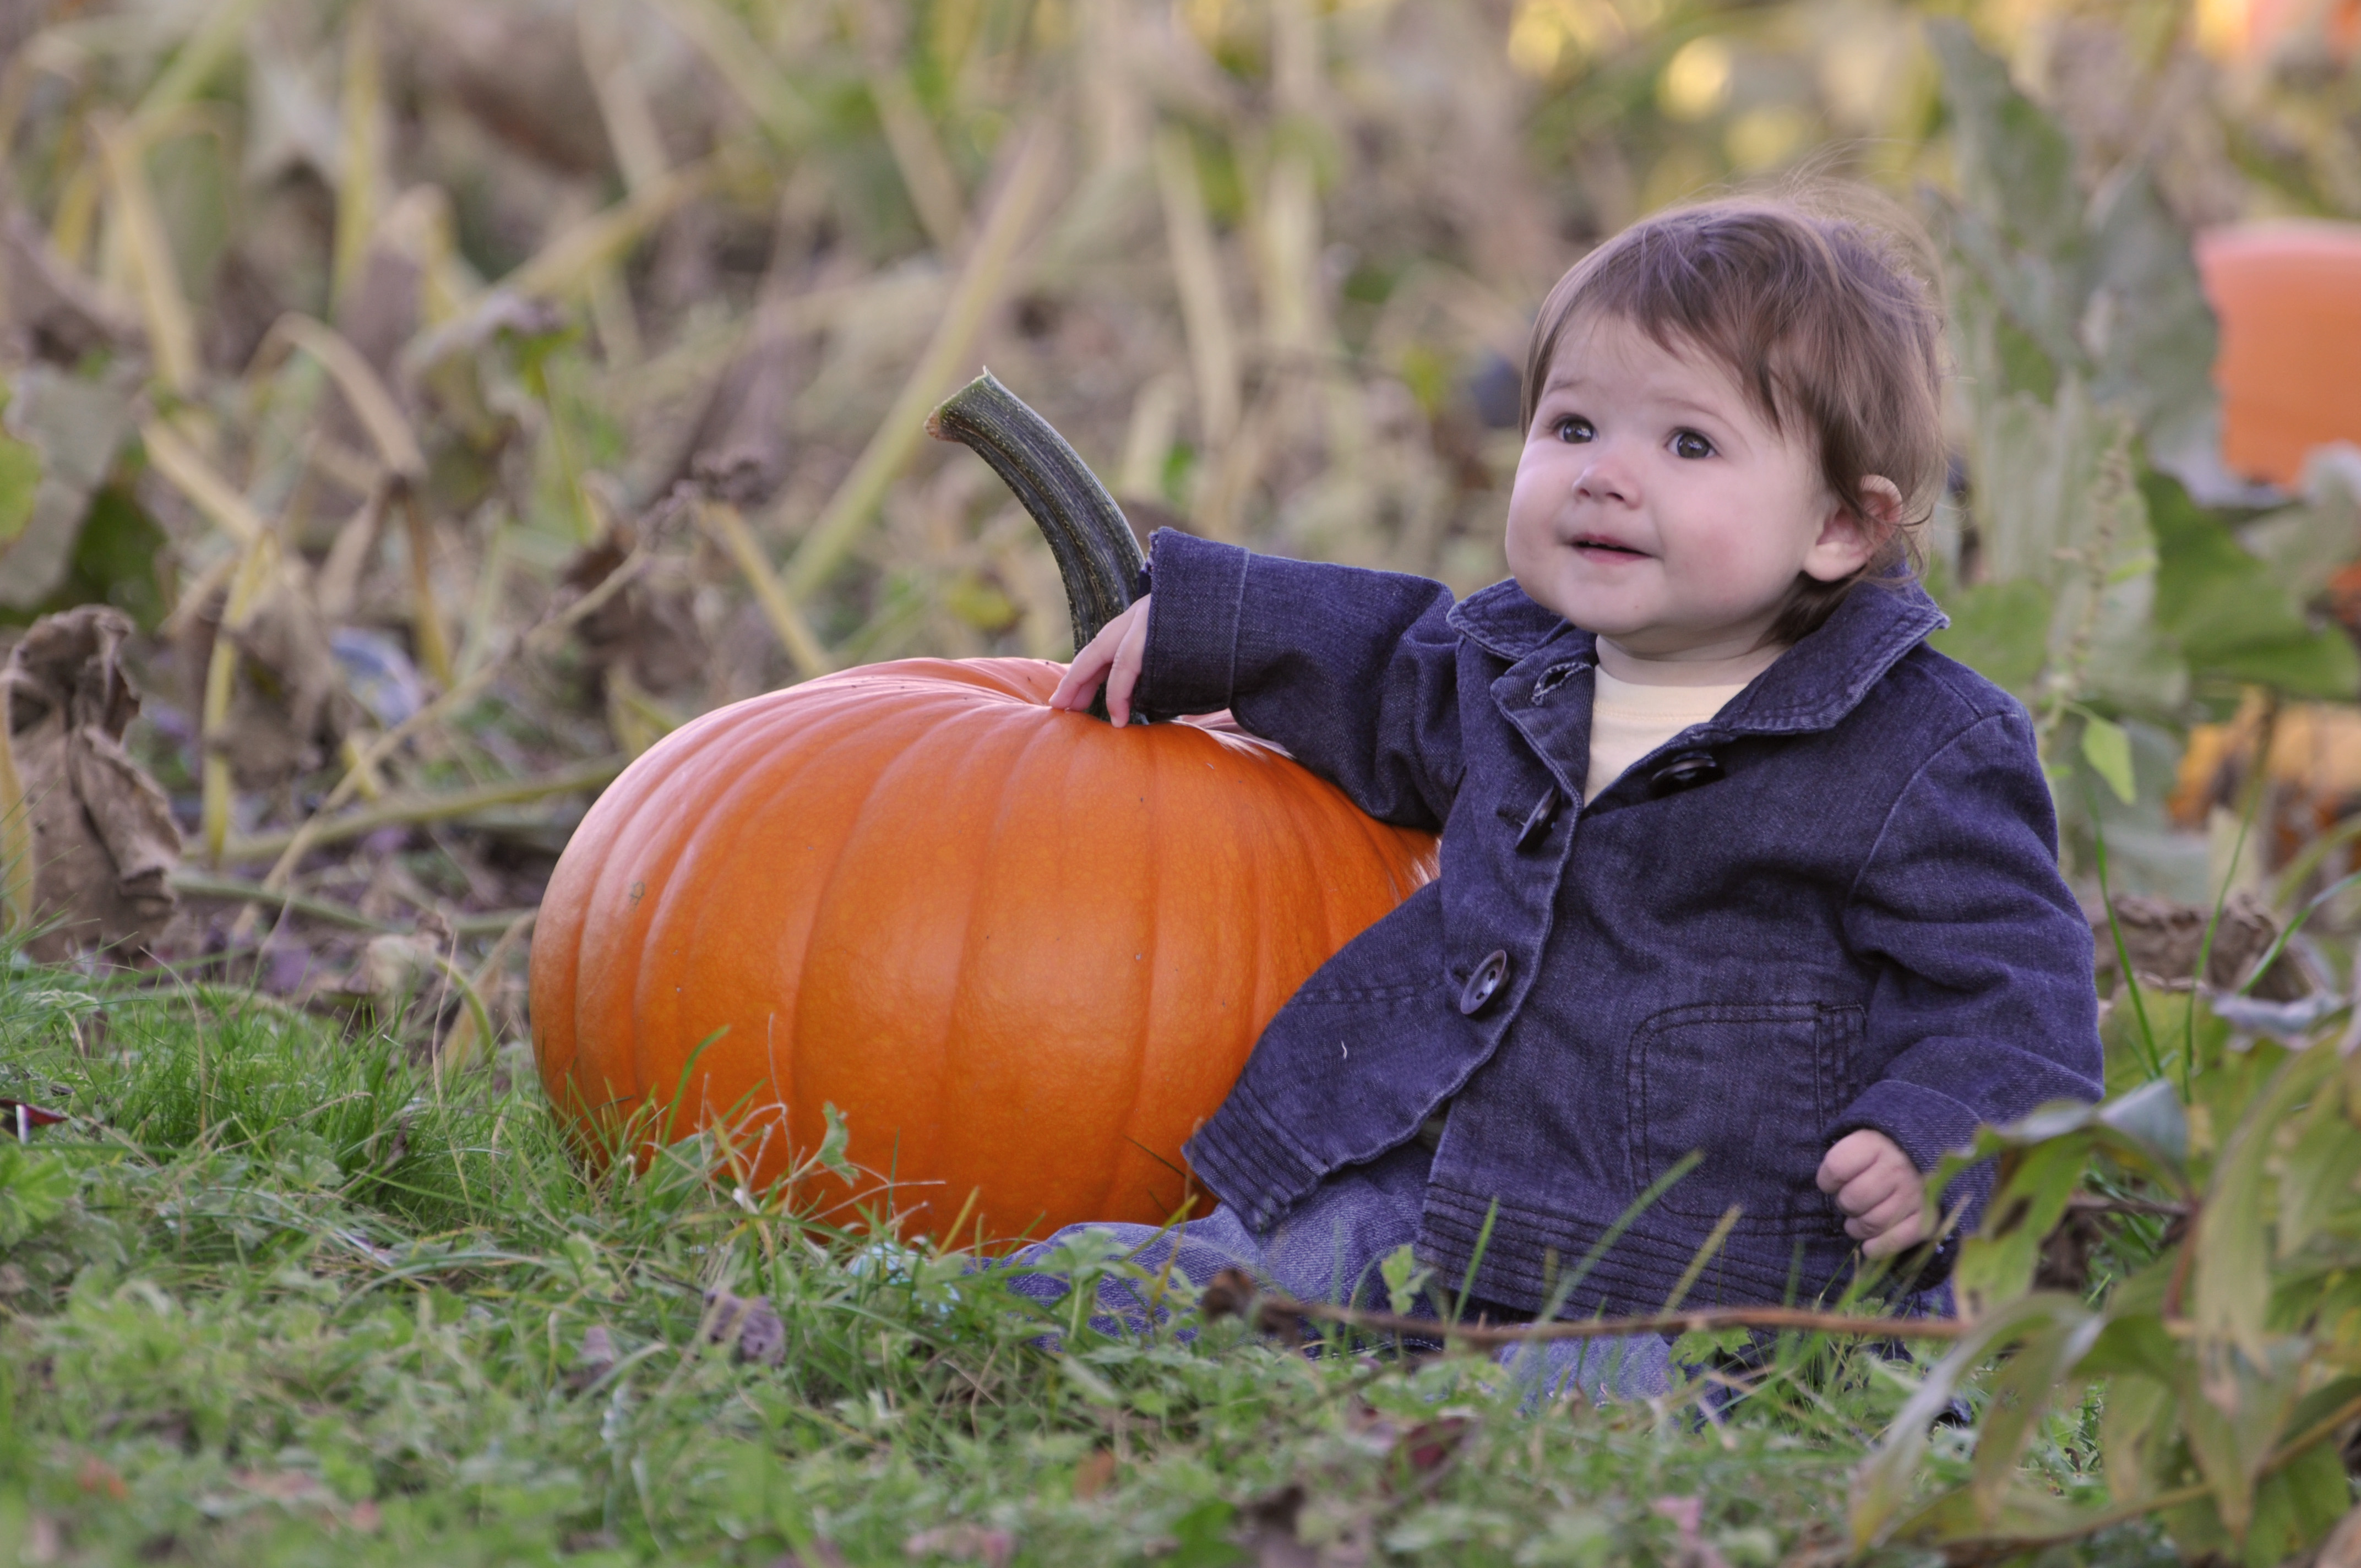 Elise and the Pumpkin.